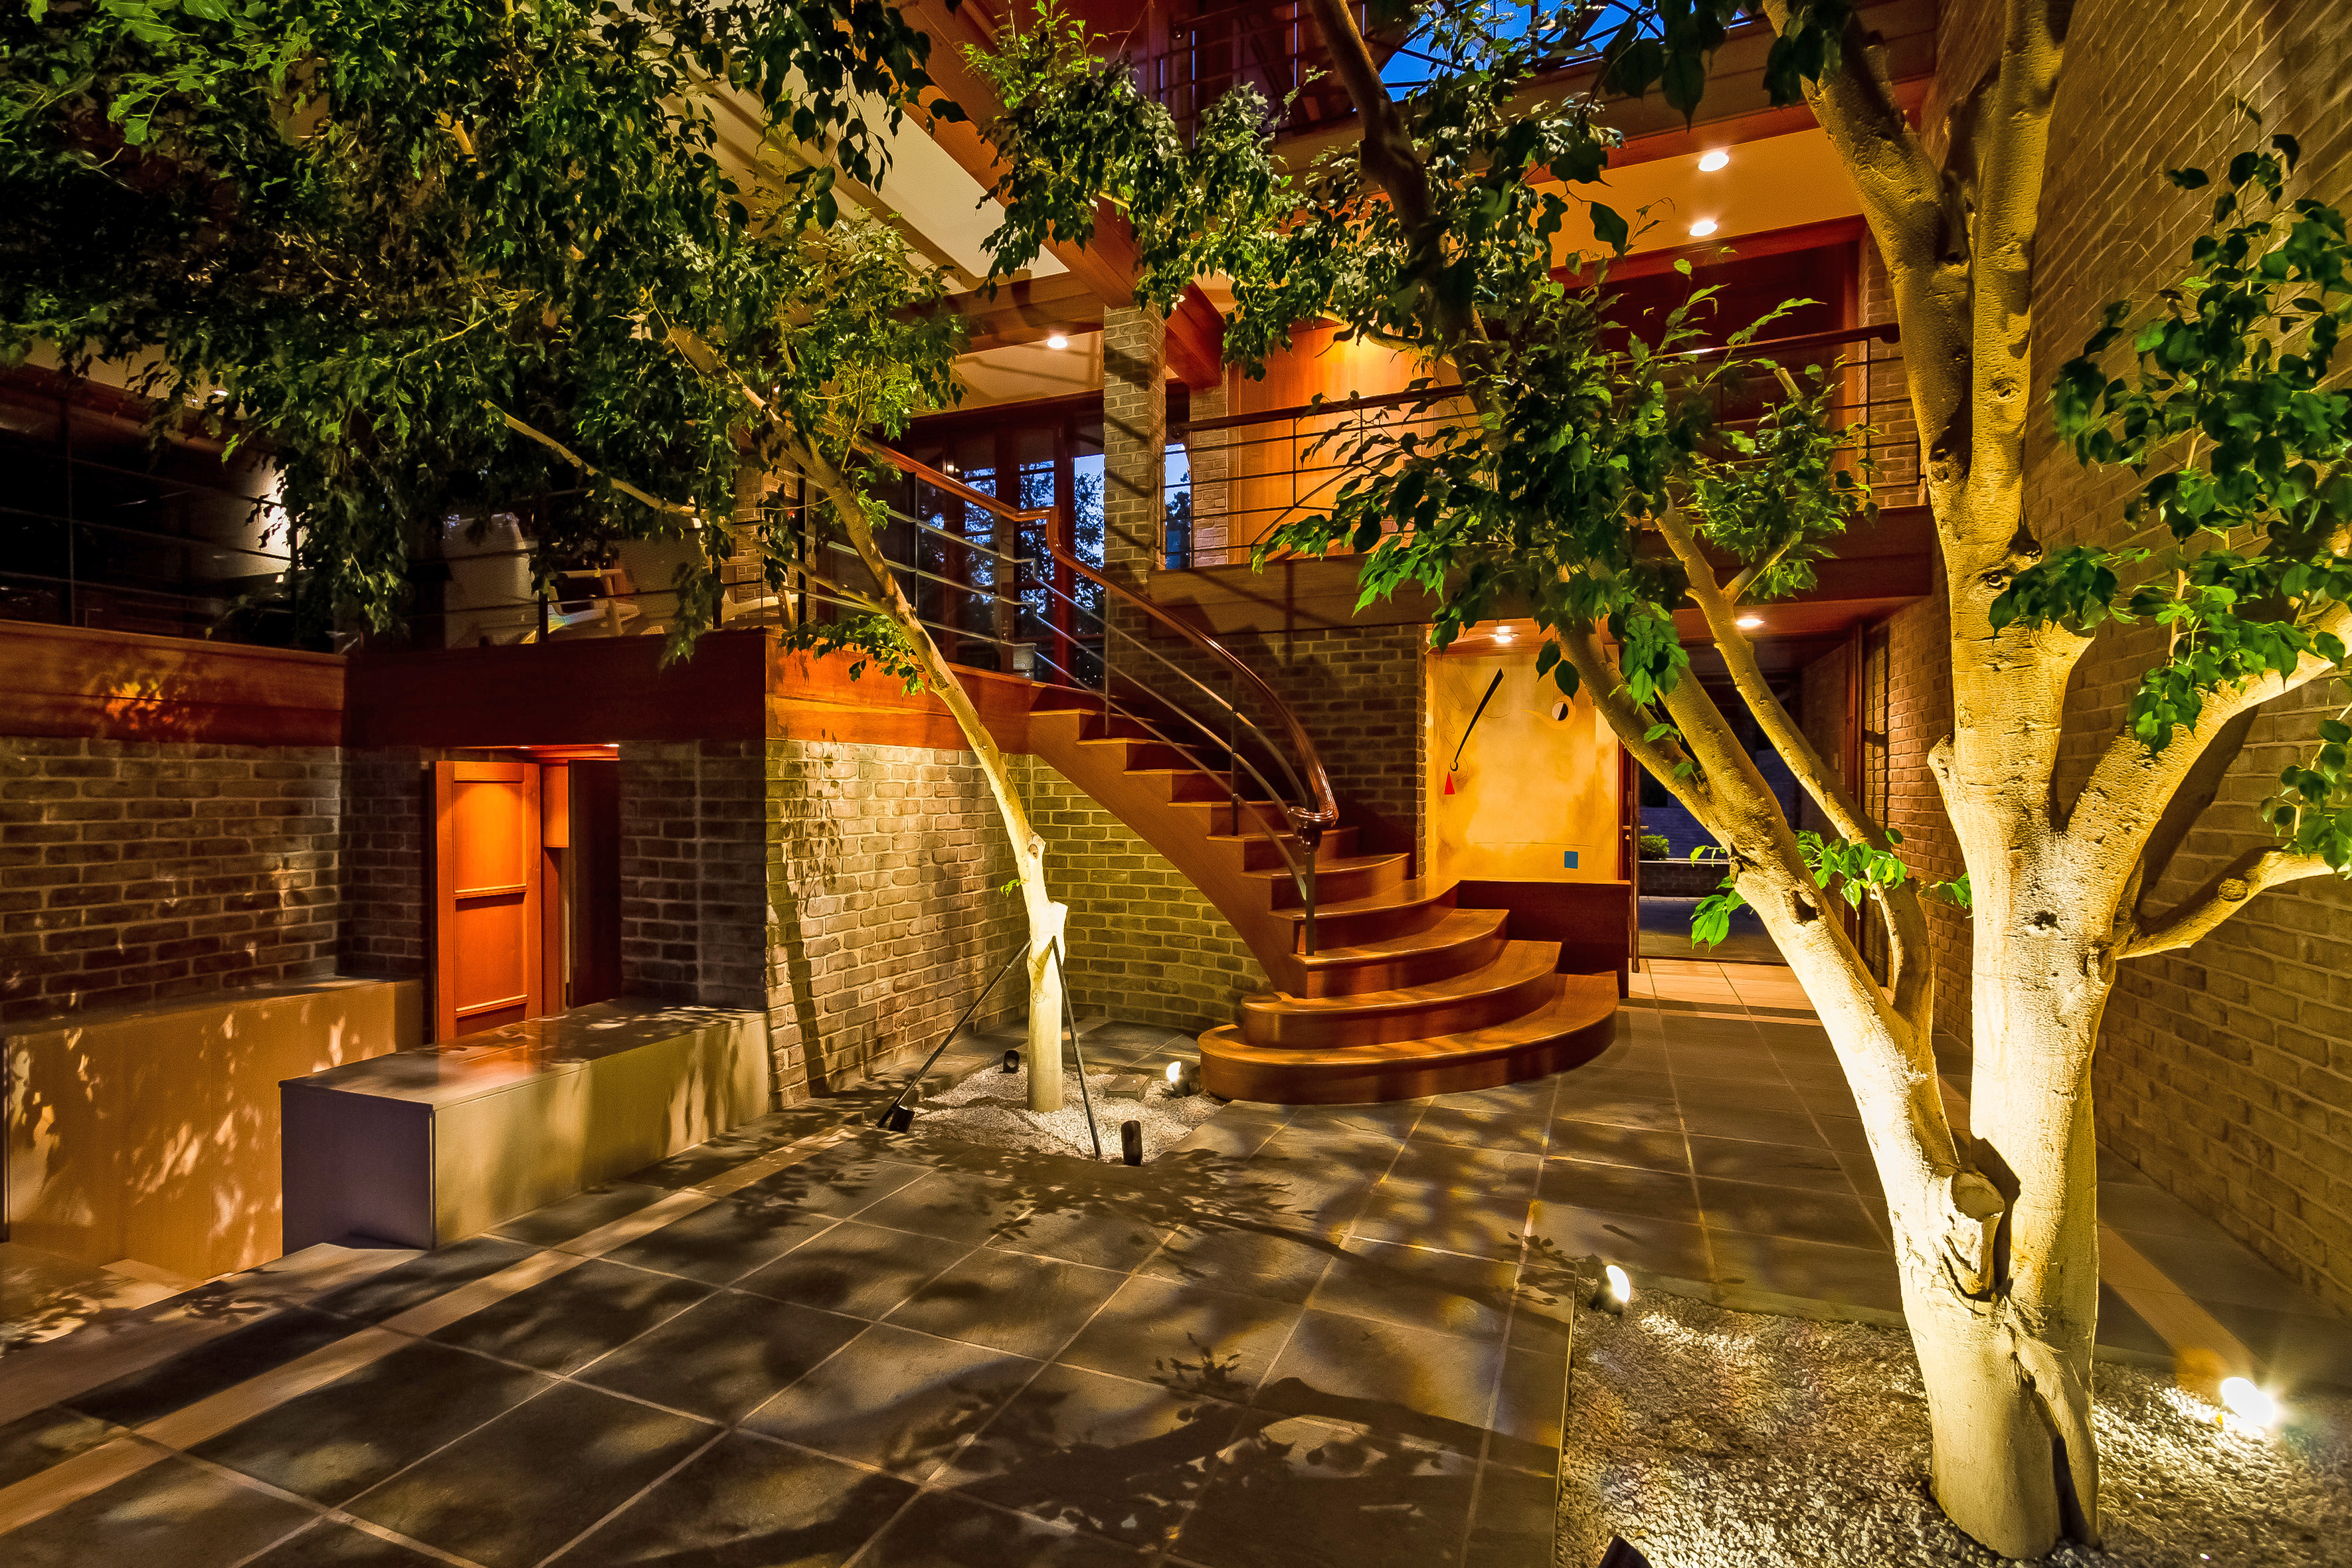 067-Twilight_Atrium-4841762-large